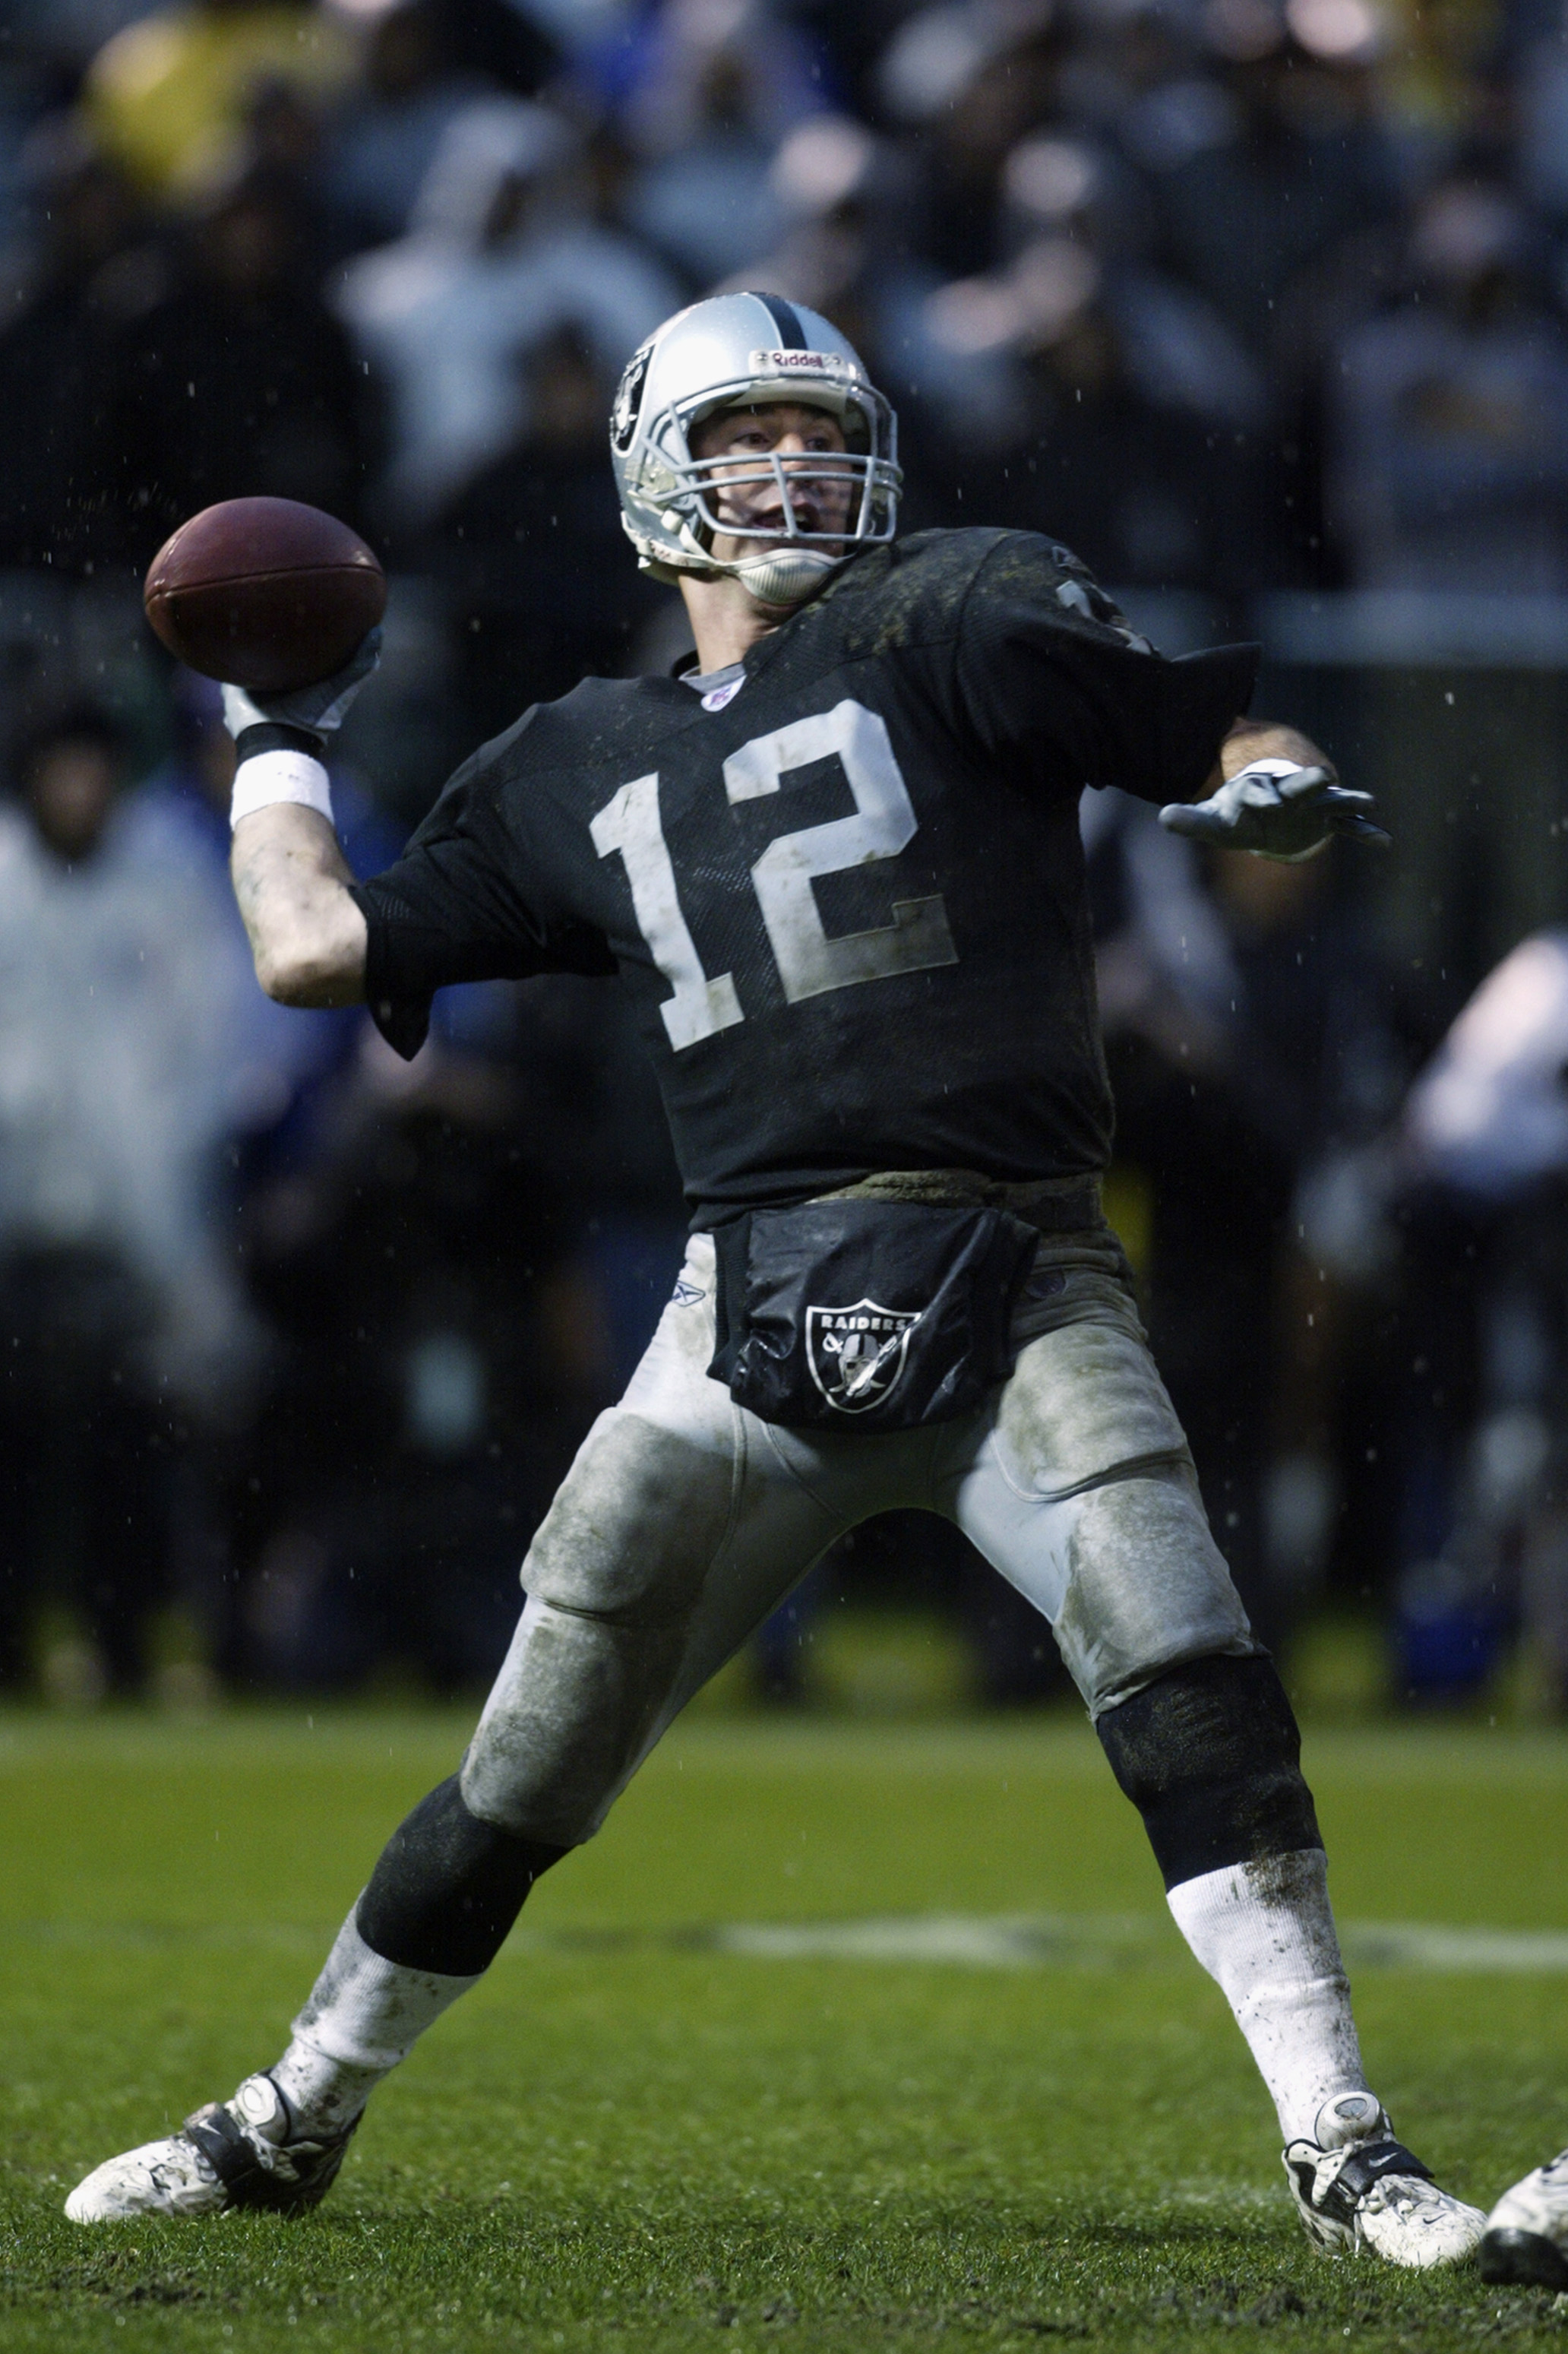 OAKLAND, CA - DECEMBER 28:  Rich Gannon #12 of the Oakland Raiders throws a pass against the Kansas City Chiefs during an NFL game at the Network Associates Coliseum on December 28, 2002 in Oakland, California.  The Raiders defeated the Chiefs 24-0. (Phot